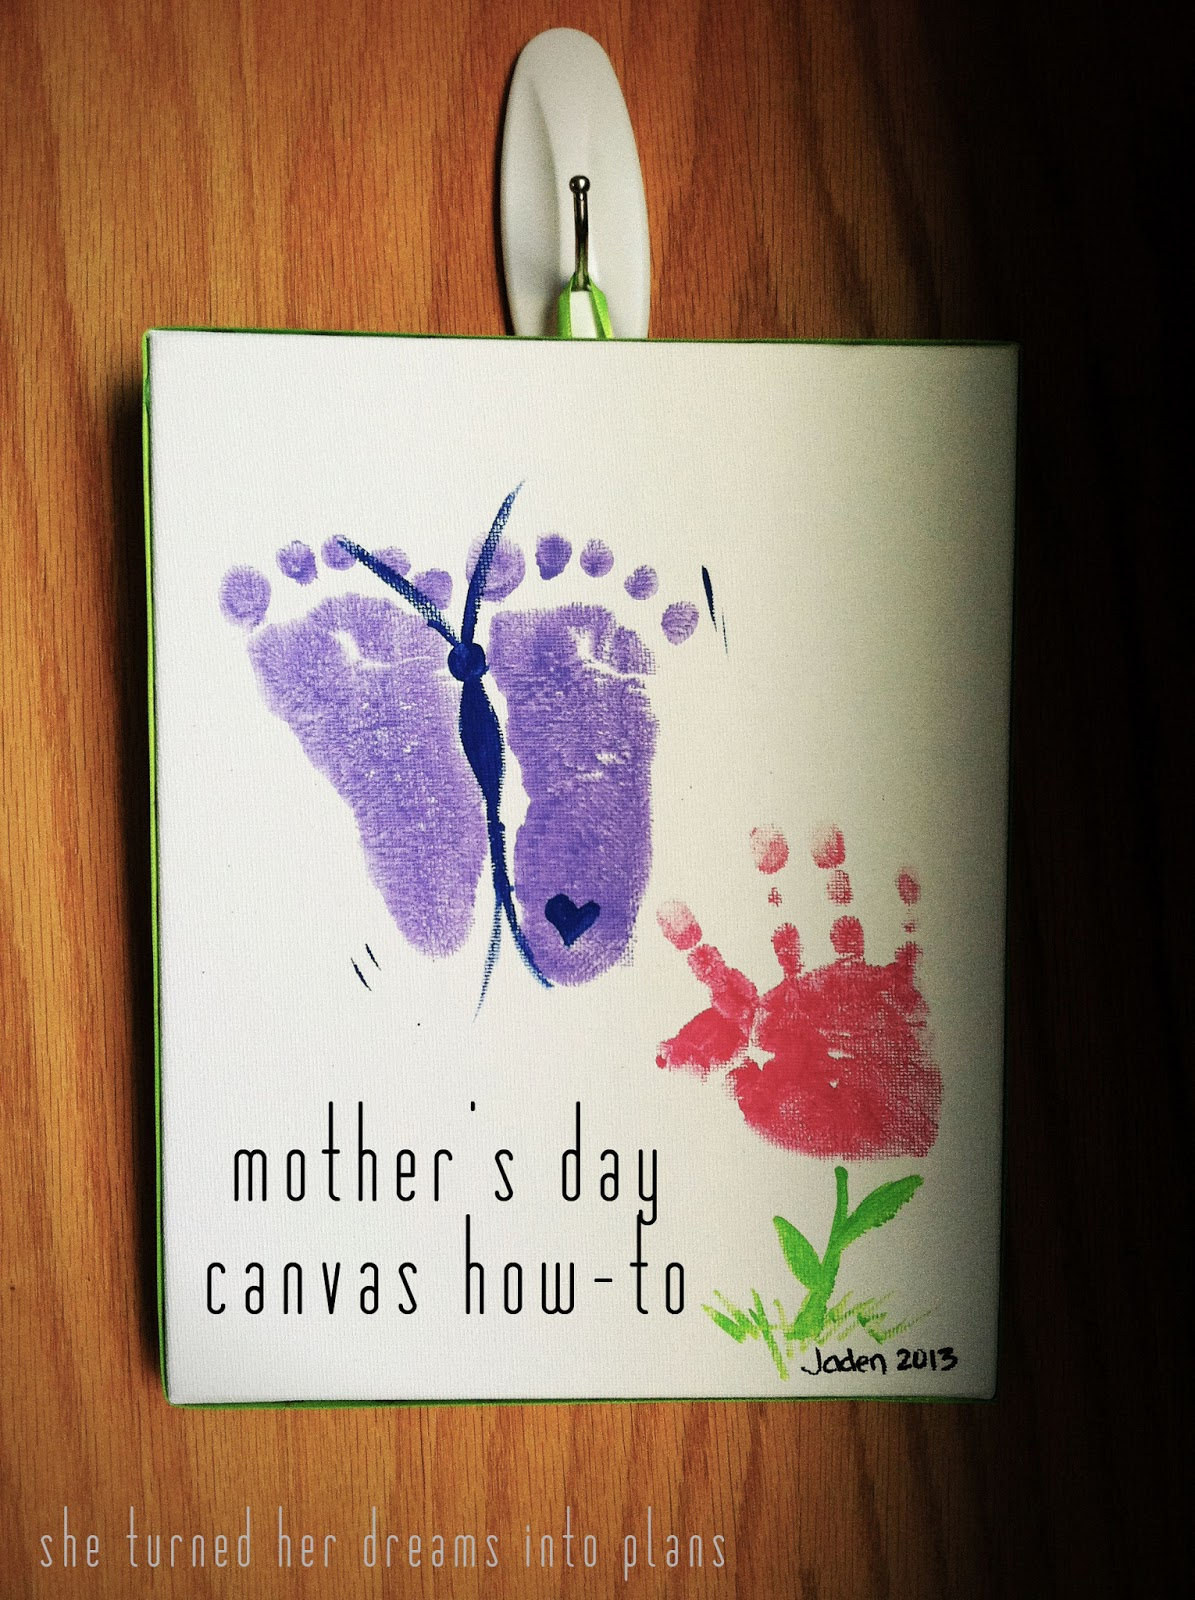 She Turned Her Dreams Into Plans: mother's day canvas how-to